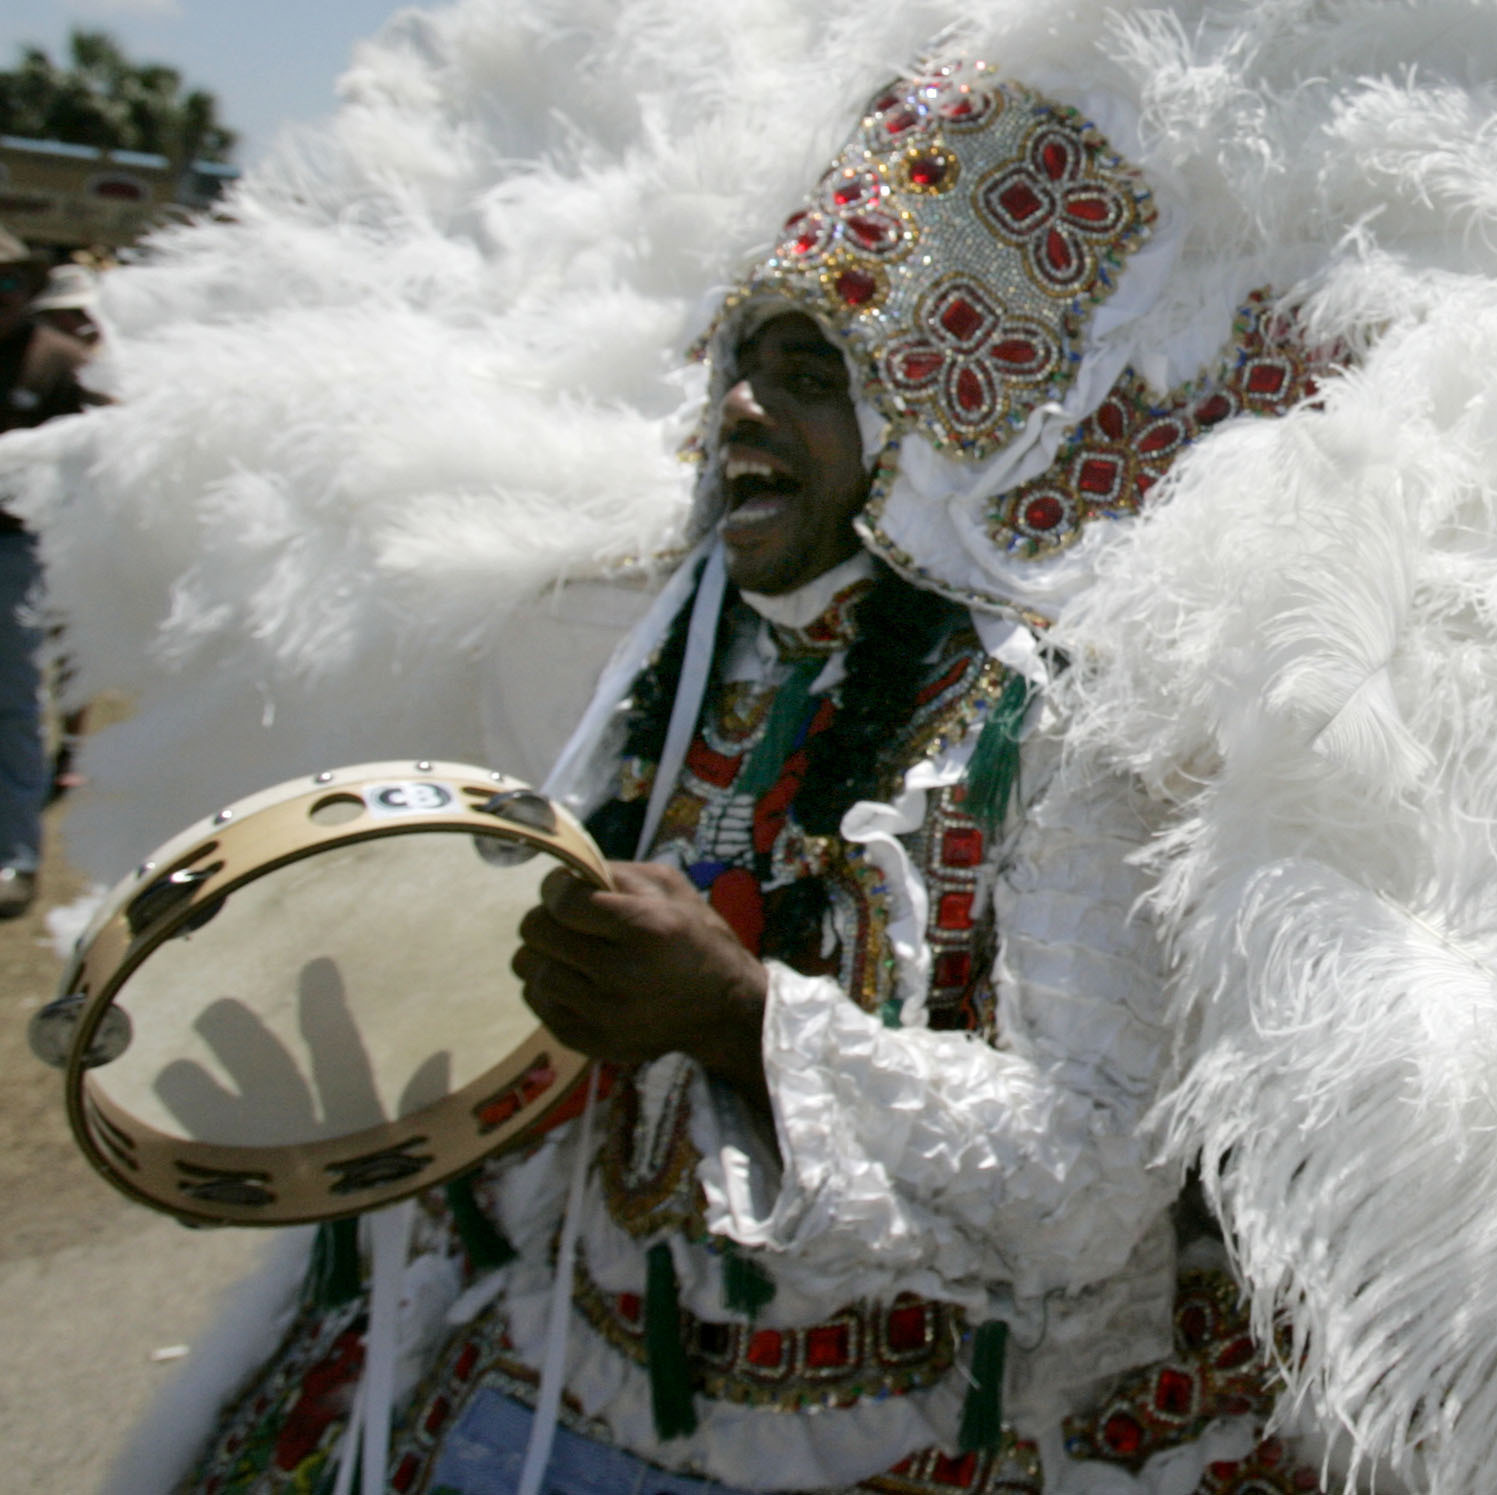 Mardi Gras Indians march through the crowd at the 2007 New Orleans Jazz and Heritage Festival. The Mardi Gras Indians are a mainstay of New Orleans culture, marching alongside brass bands in the annual Mardi Gras parades.